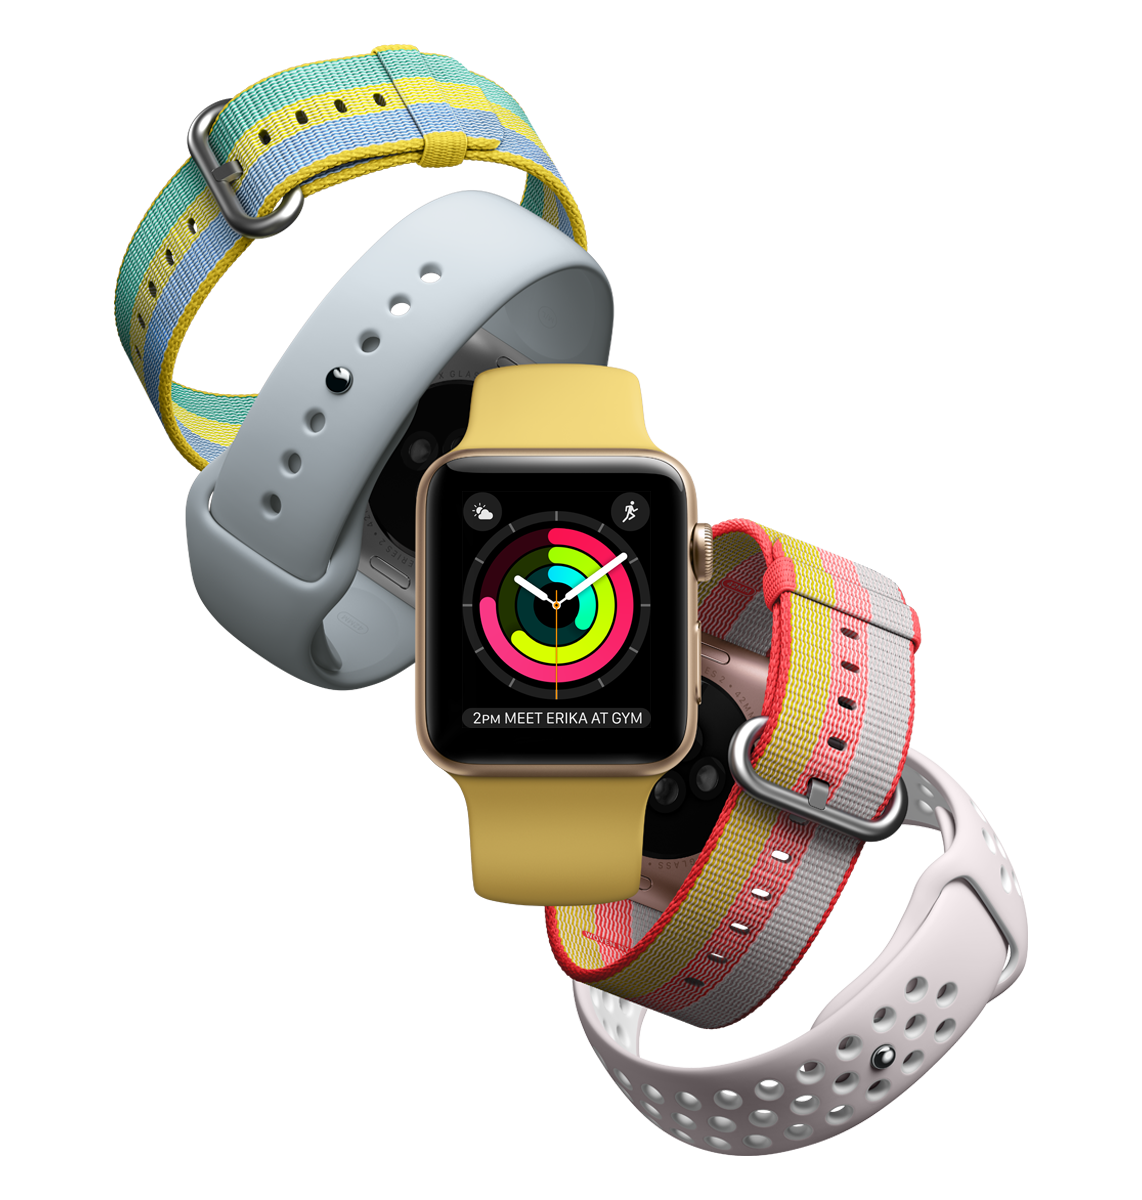 Apple Watch OS 4